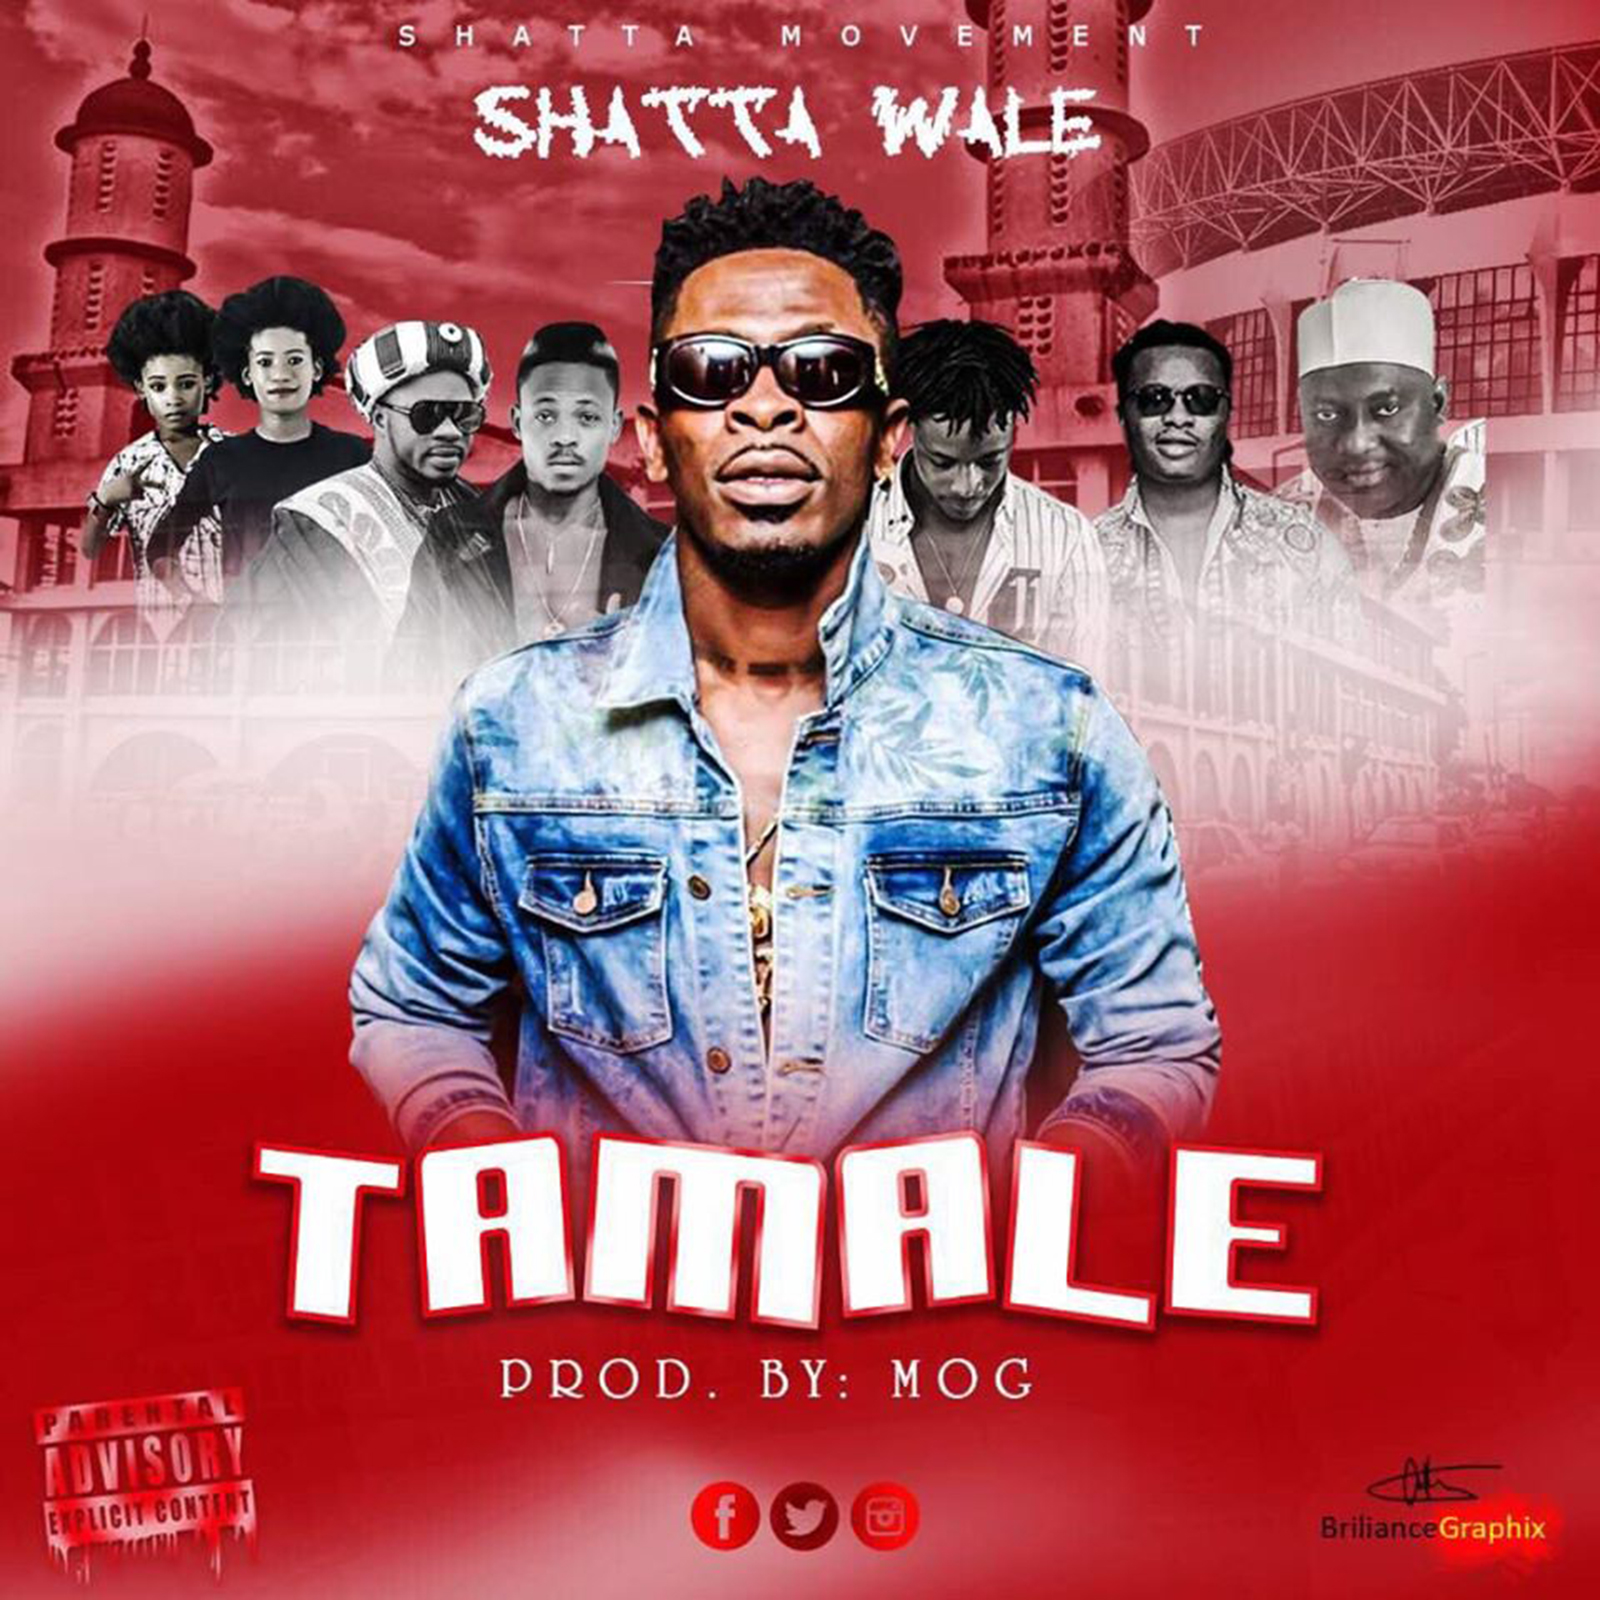 Tamale by Shatta Wale